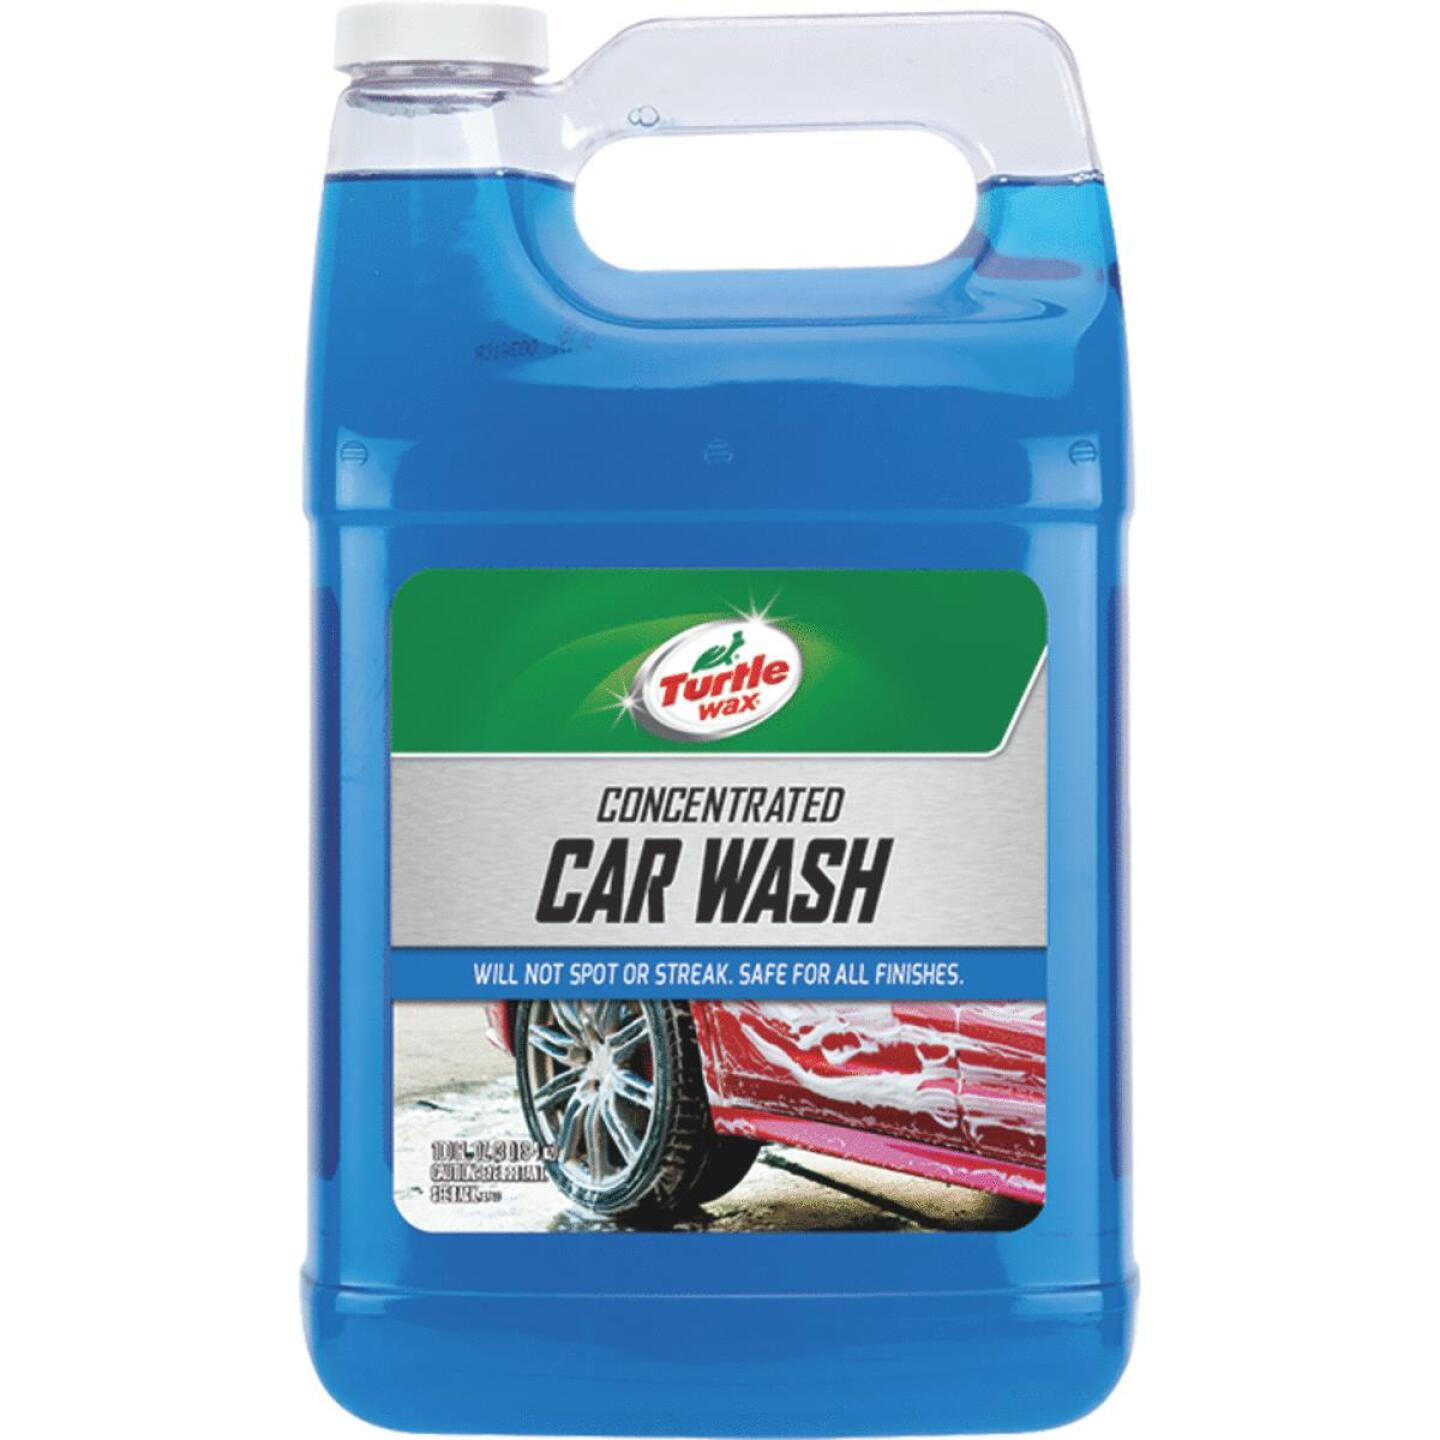 Turtle Wax 100 oz Liquid Concentrate Car Wash Image 1